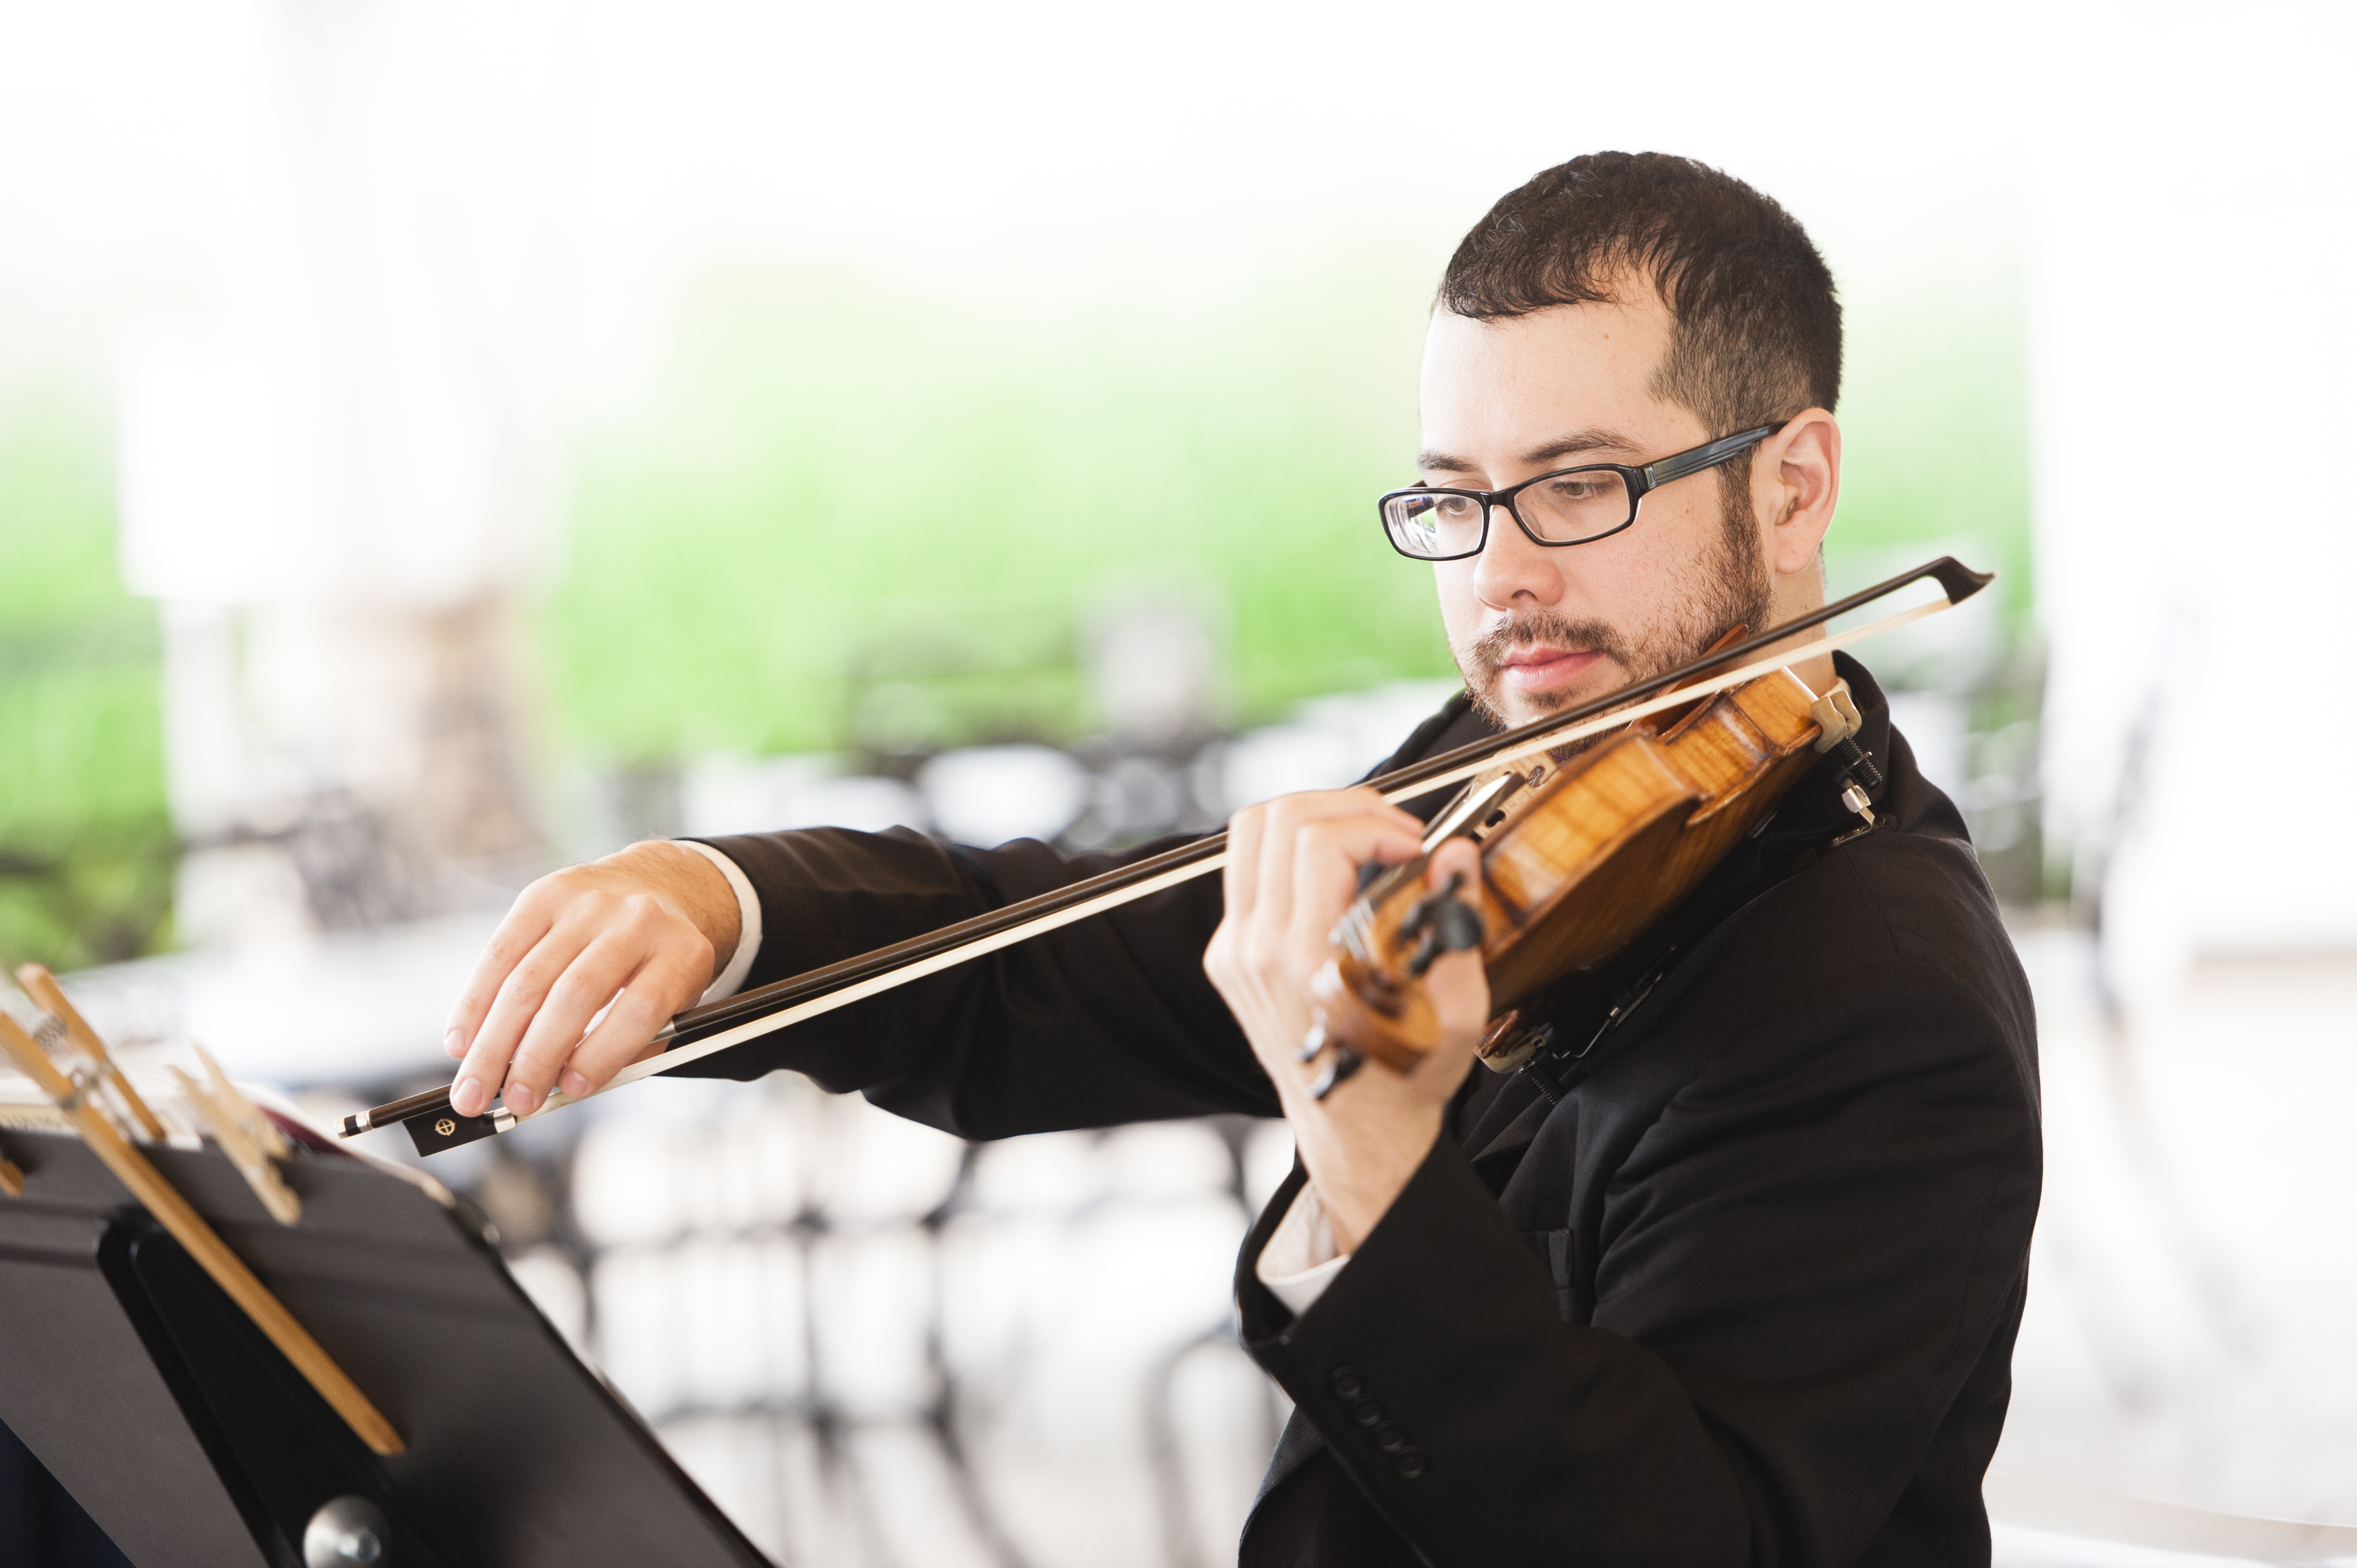 atmosphere productions now has the ability to provide live string musicians to compliment your wedding ceremony cocktail hour or dinner music needs